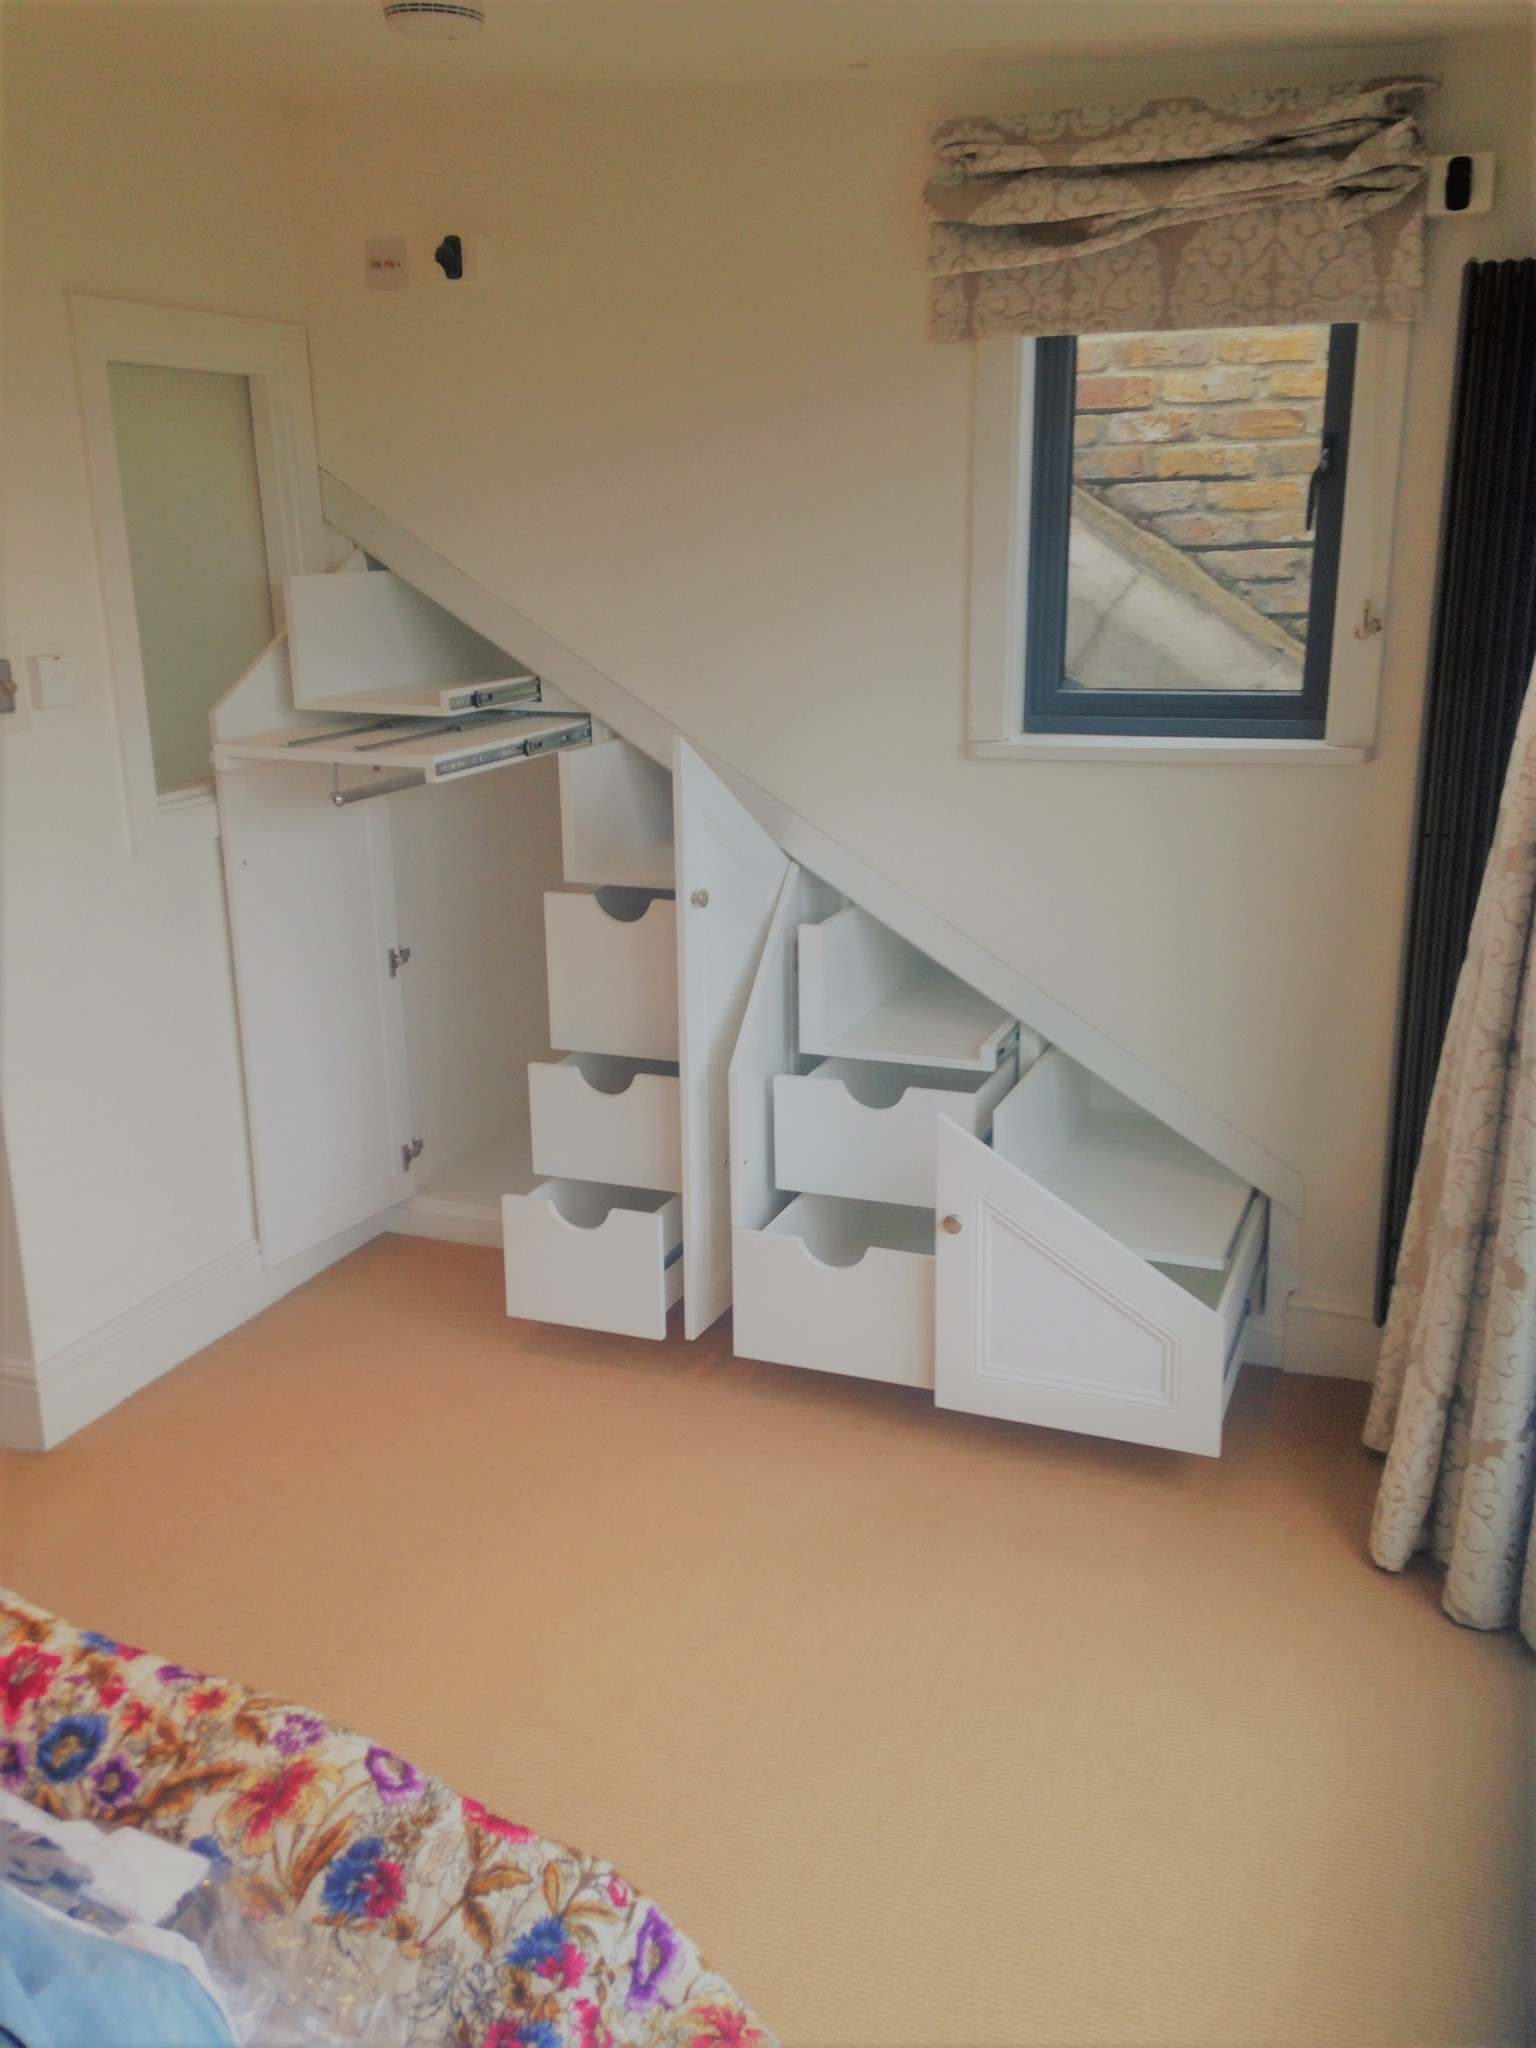 The Perfect example of the many options open to internal configuration. This Angled under stairs unit hides it all within